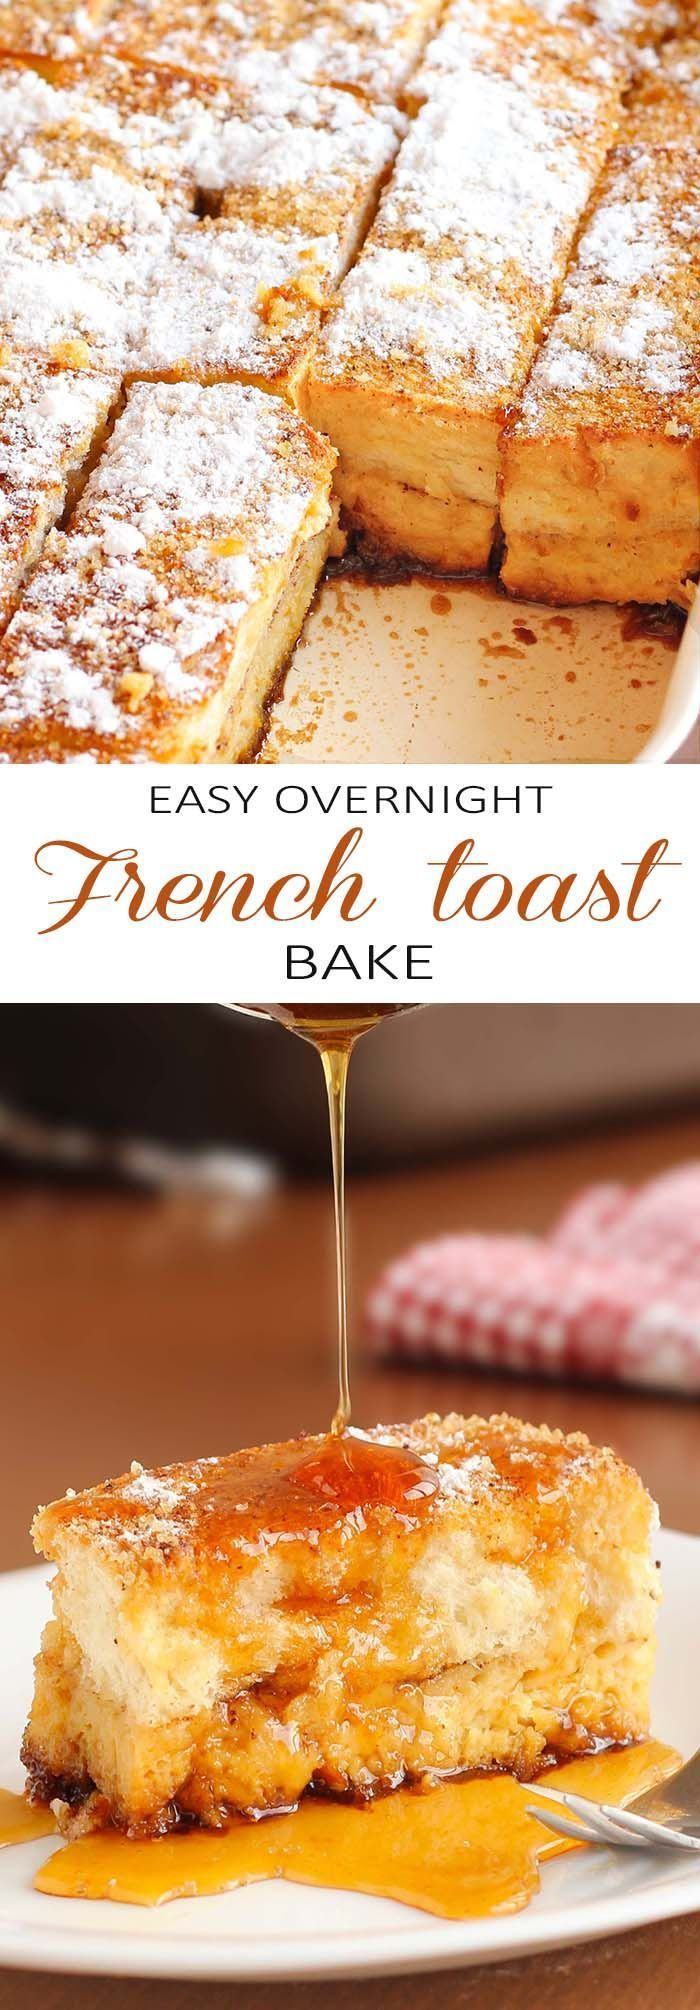 This Easy Overnight French toast bake just happens to be perfect for cold winter mornings, lazy weekend mornings, or as an easy, make-ahead breakfast.